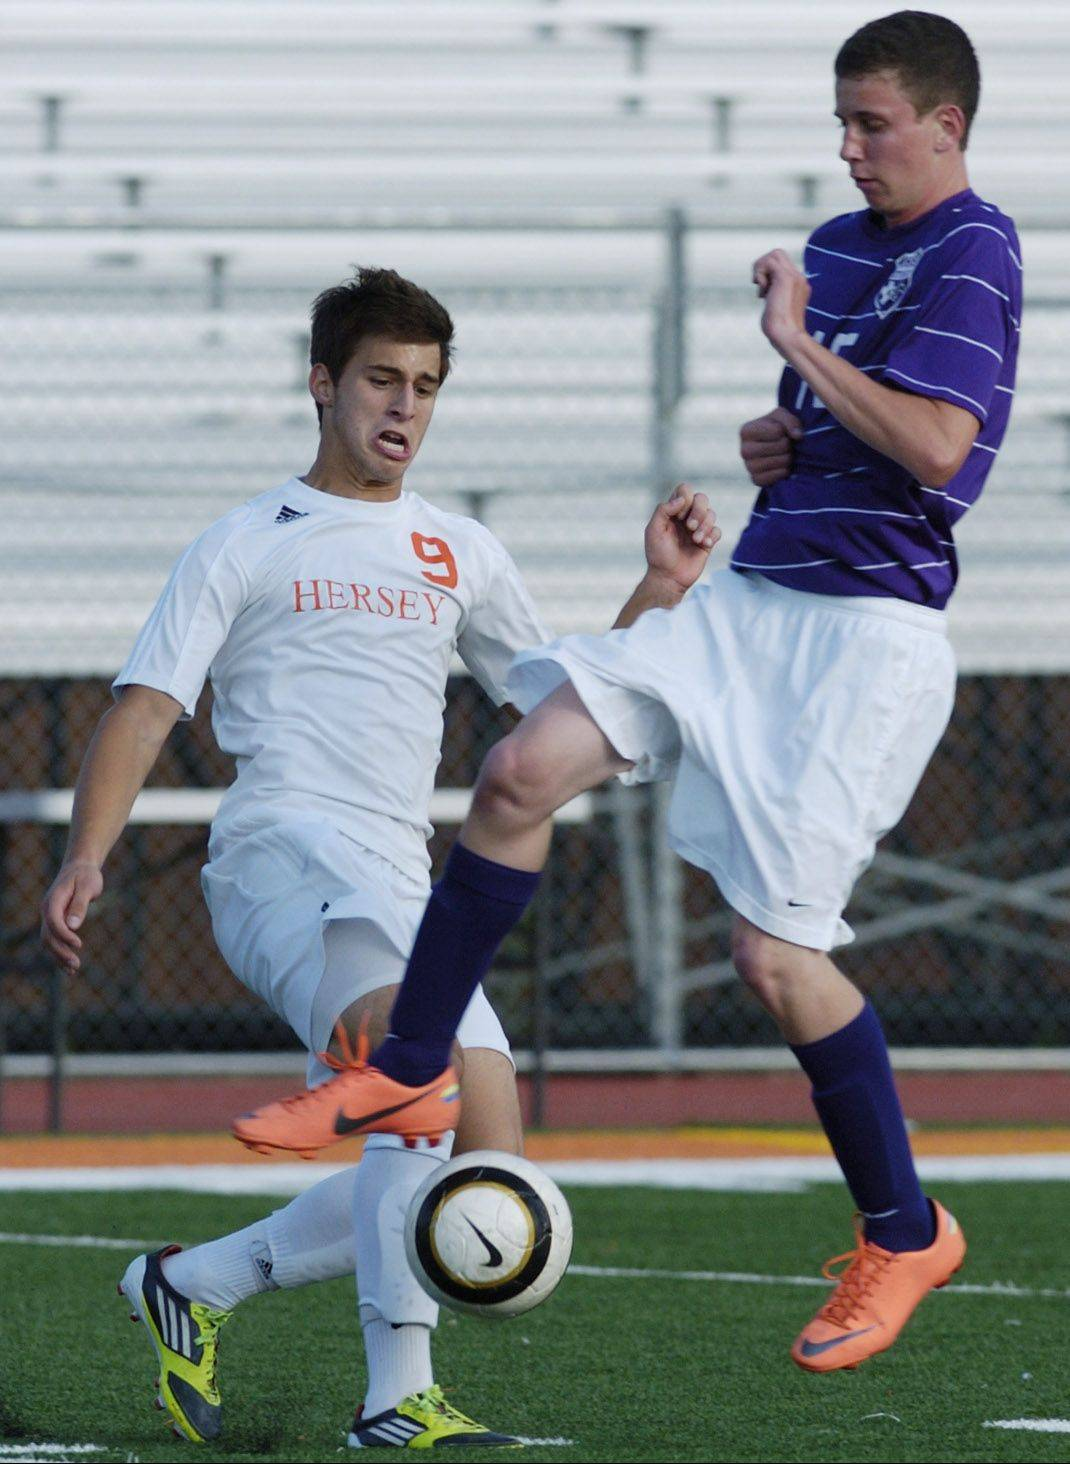 Rolling Meadows' Tim Smith, right, tries to knock the ball down in front of Hersey's Nikola Vukovic on Tuesday.